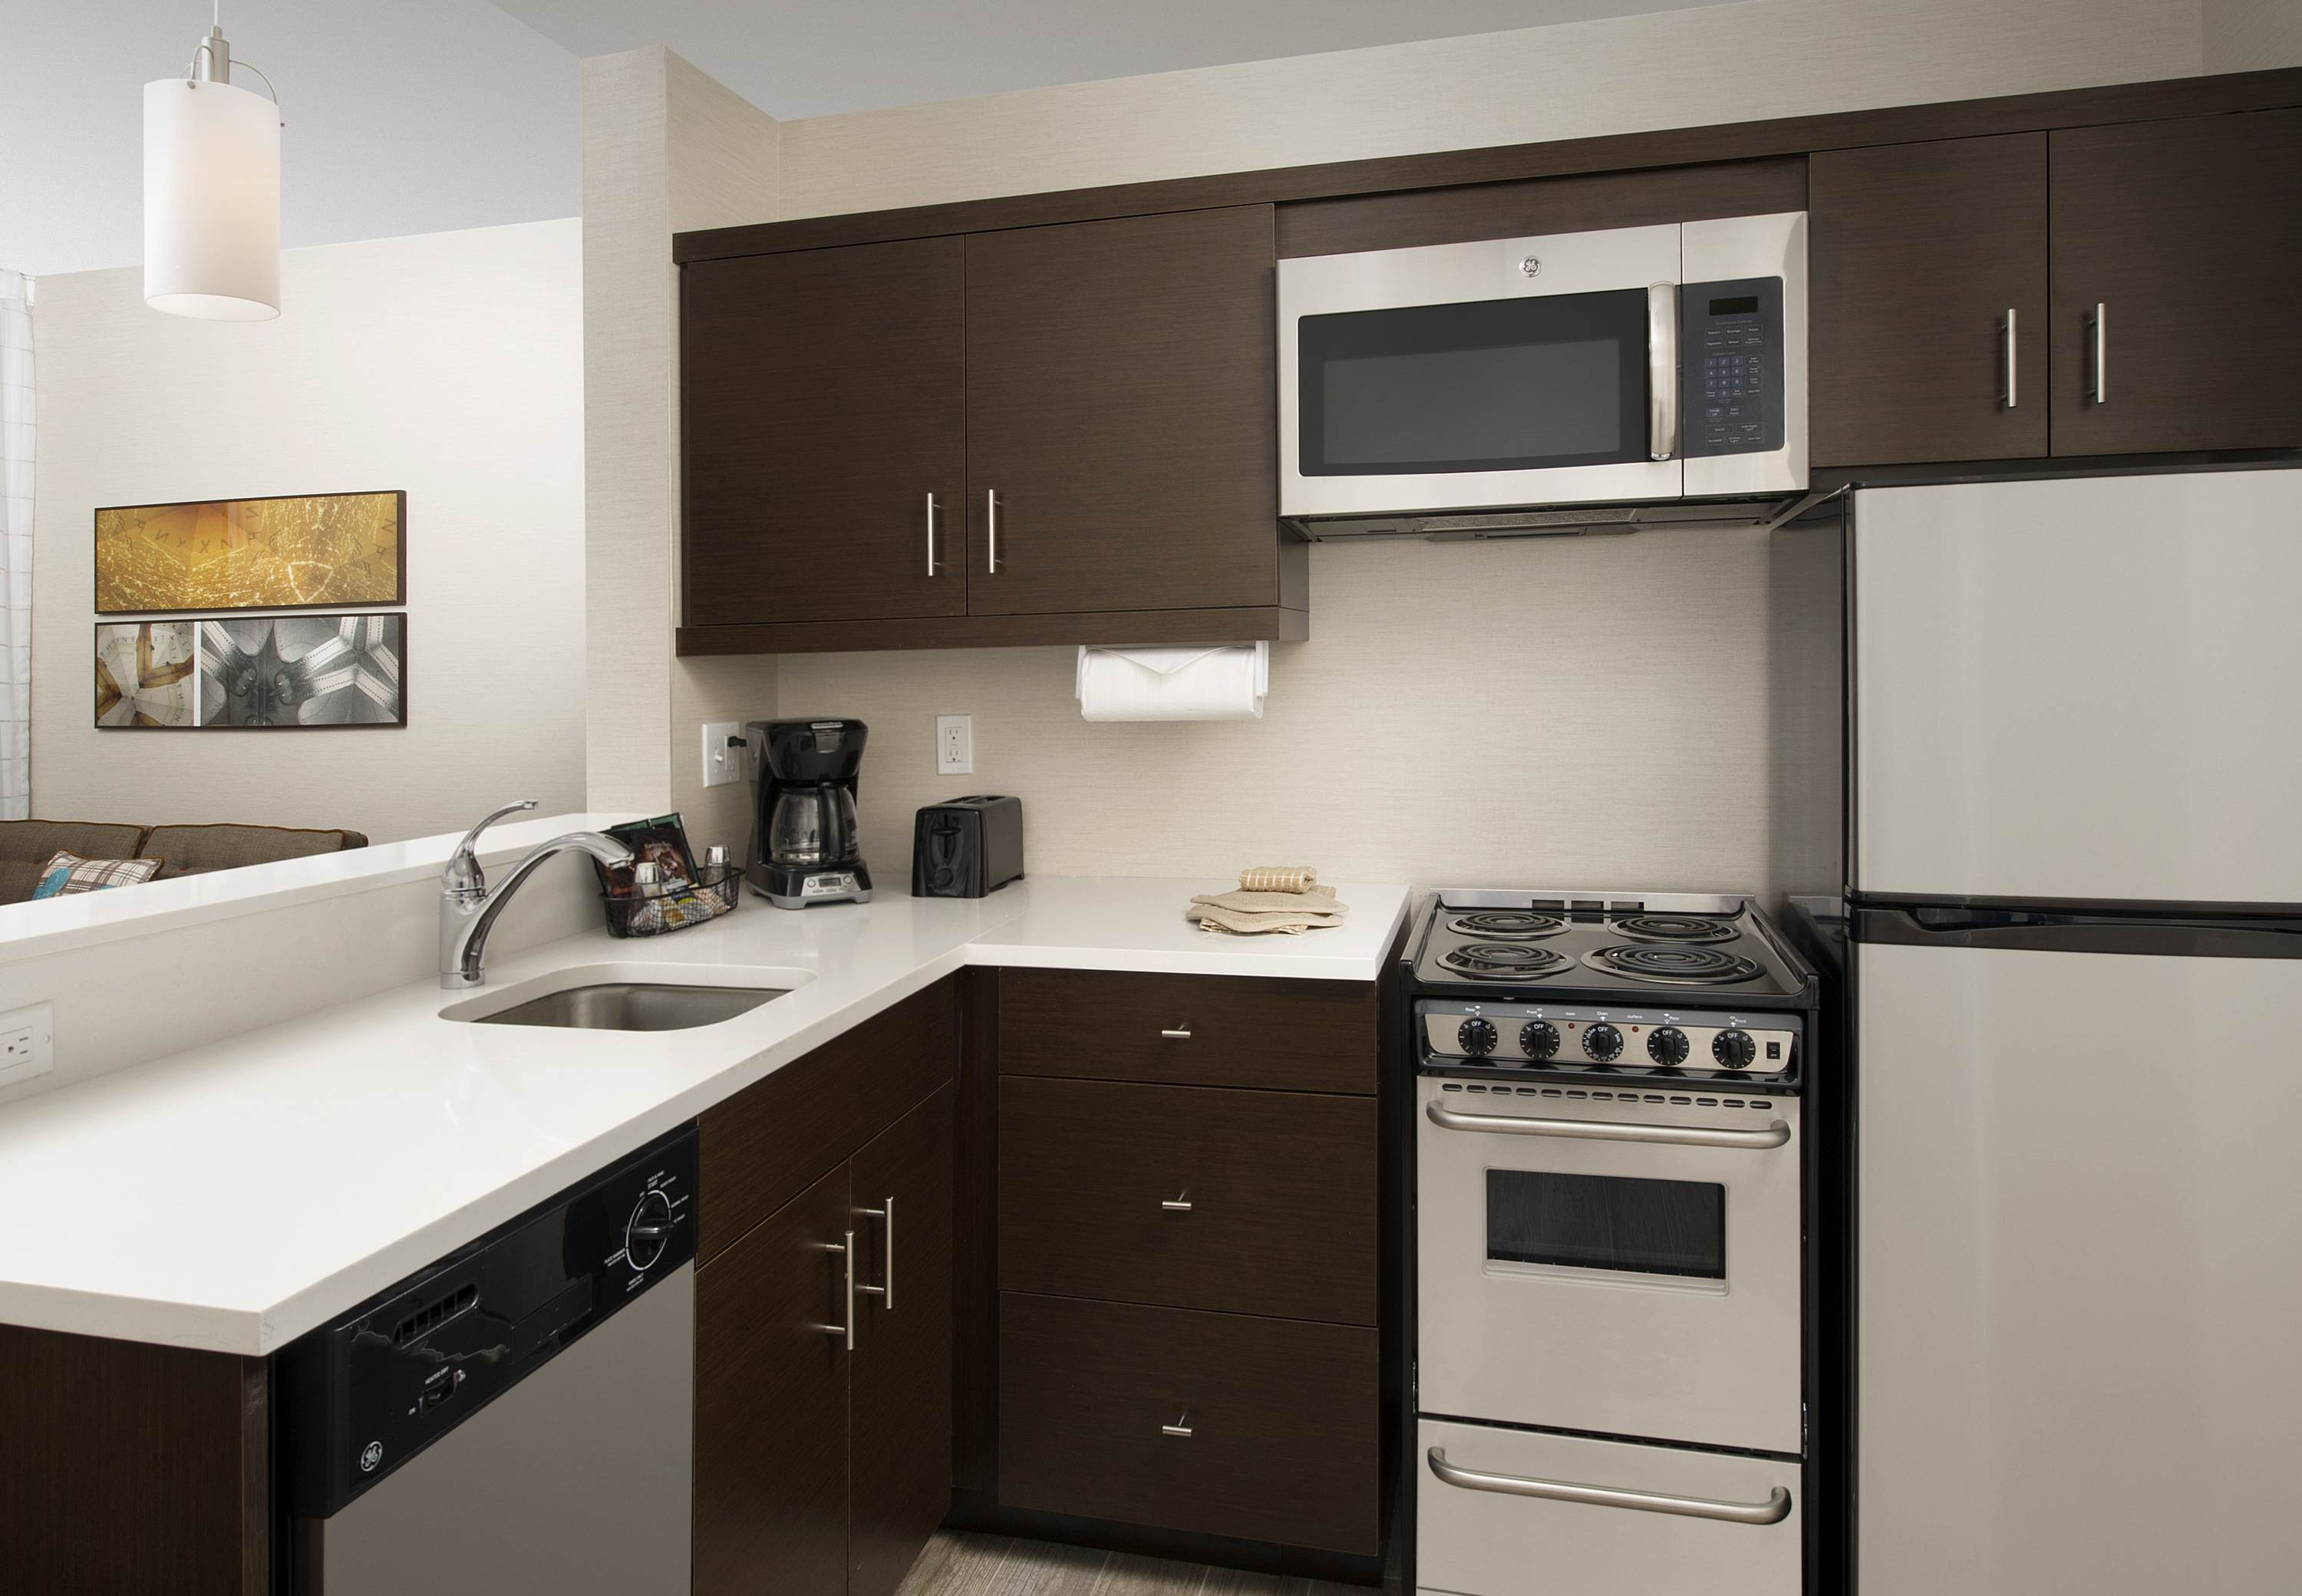 TownePlace Suites by Marriott Alexandria Fort Belvoir image 5